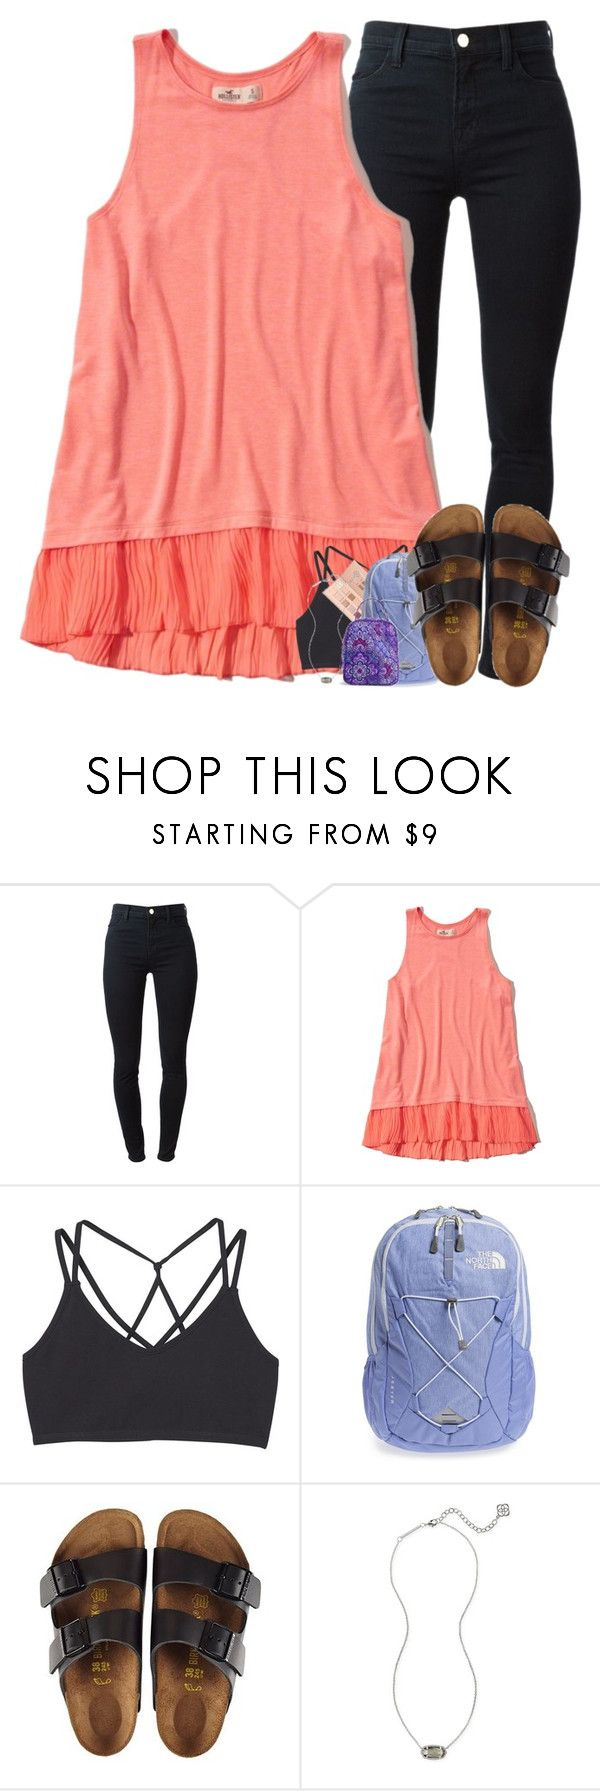 """school."" by elizabethannee ❤ liked on Polyvore featuring J Brand, Hollister Co., MANGO, LORAC, The North Face, Birkenstock, Kendra Scott and Vera Bradley"